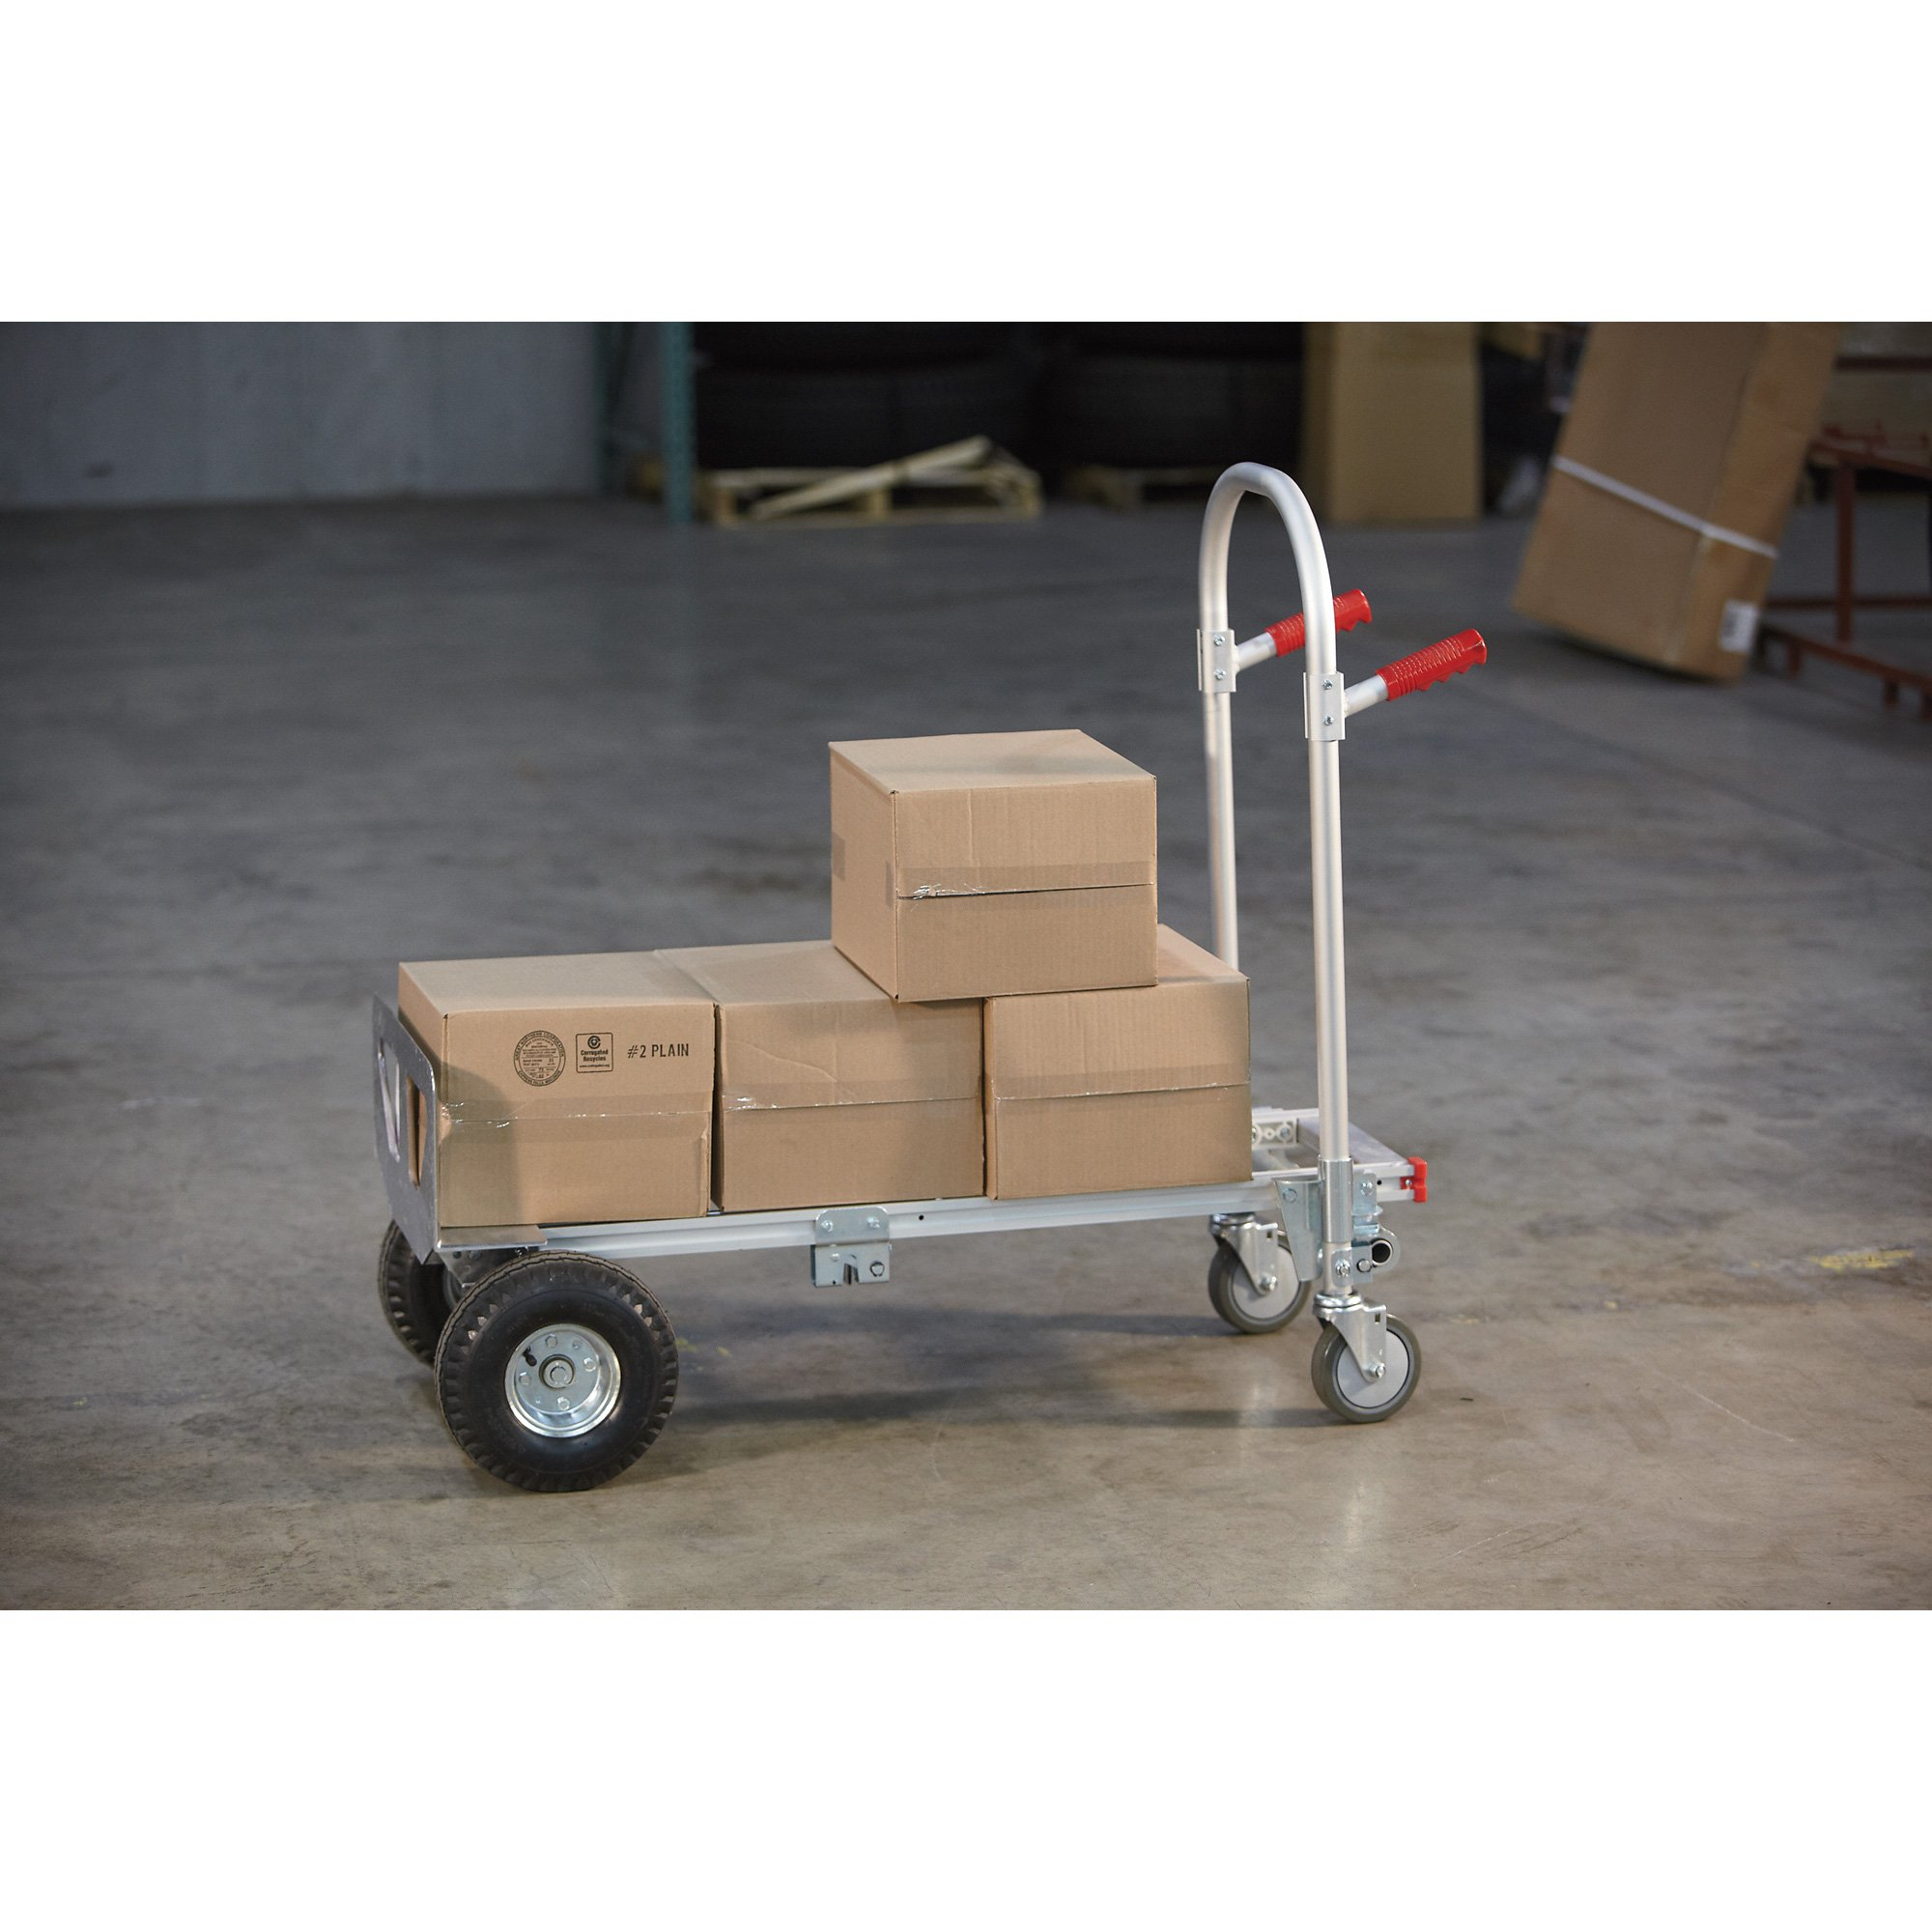 Northern Industrial Tools 2-in-1 Hand Truck - Aluminum, 770-lb. Capacity, Model# HS-7A by Northern Industrial